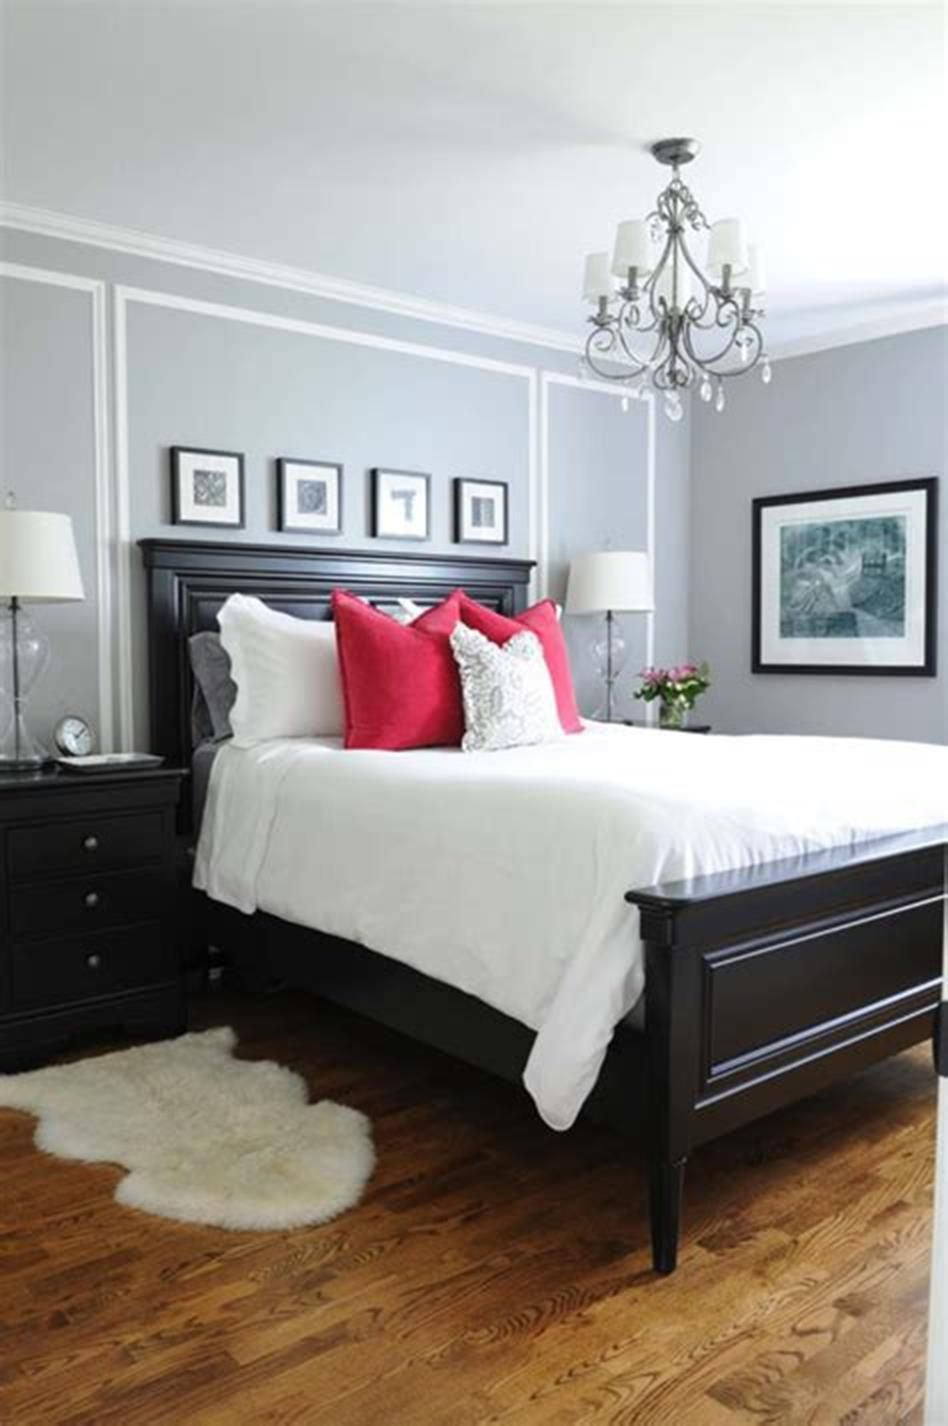 5 Amazing Small Master Bedroom Decorating Design Ideas on a